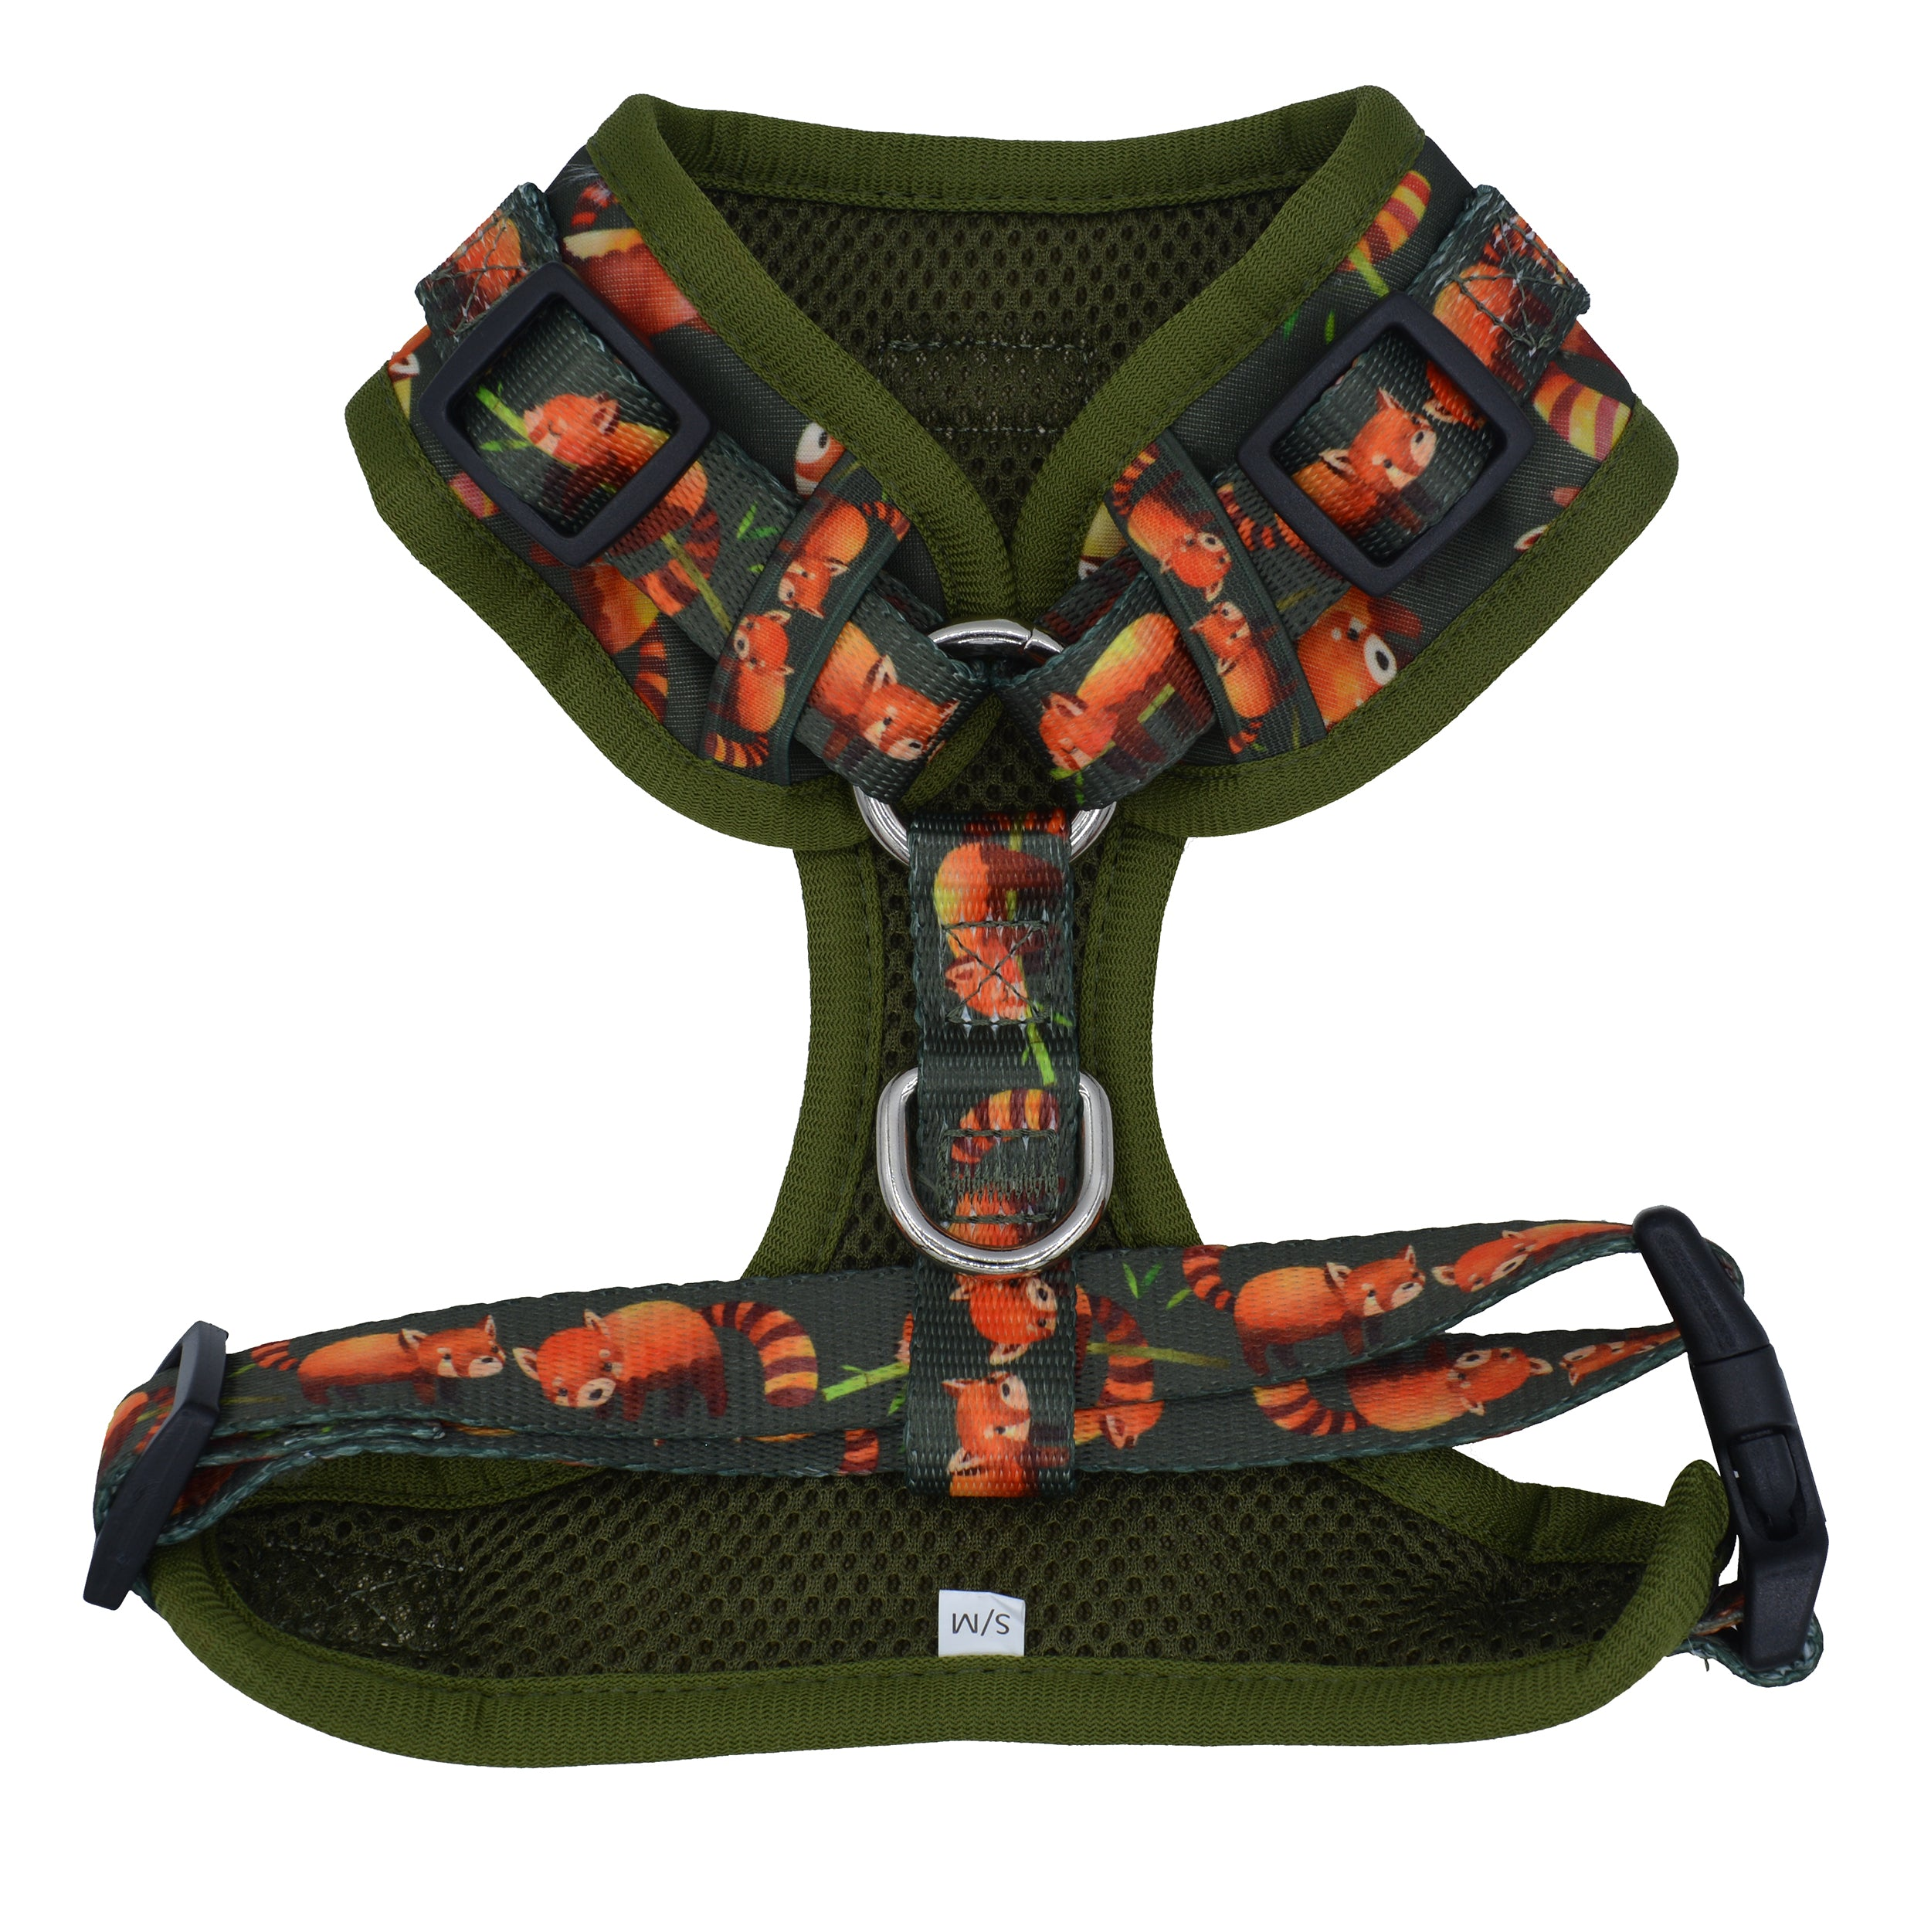 DOG HARNESS - Red Panda - Neck Adjustable Harness (Premade)-Harness-Dizzy Dog Collars